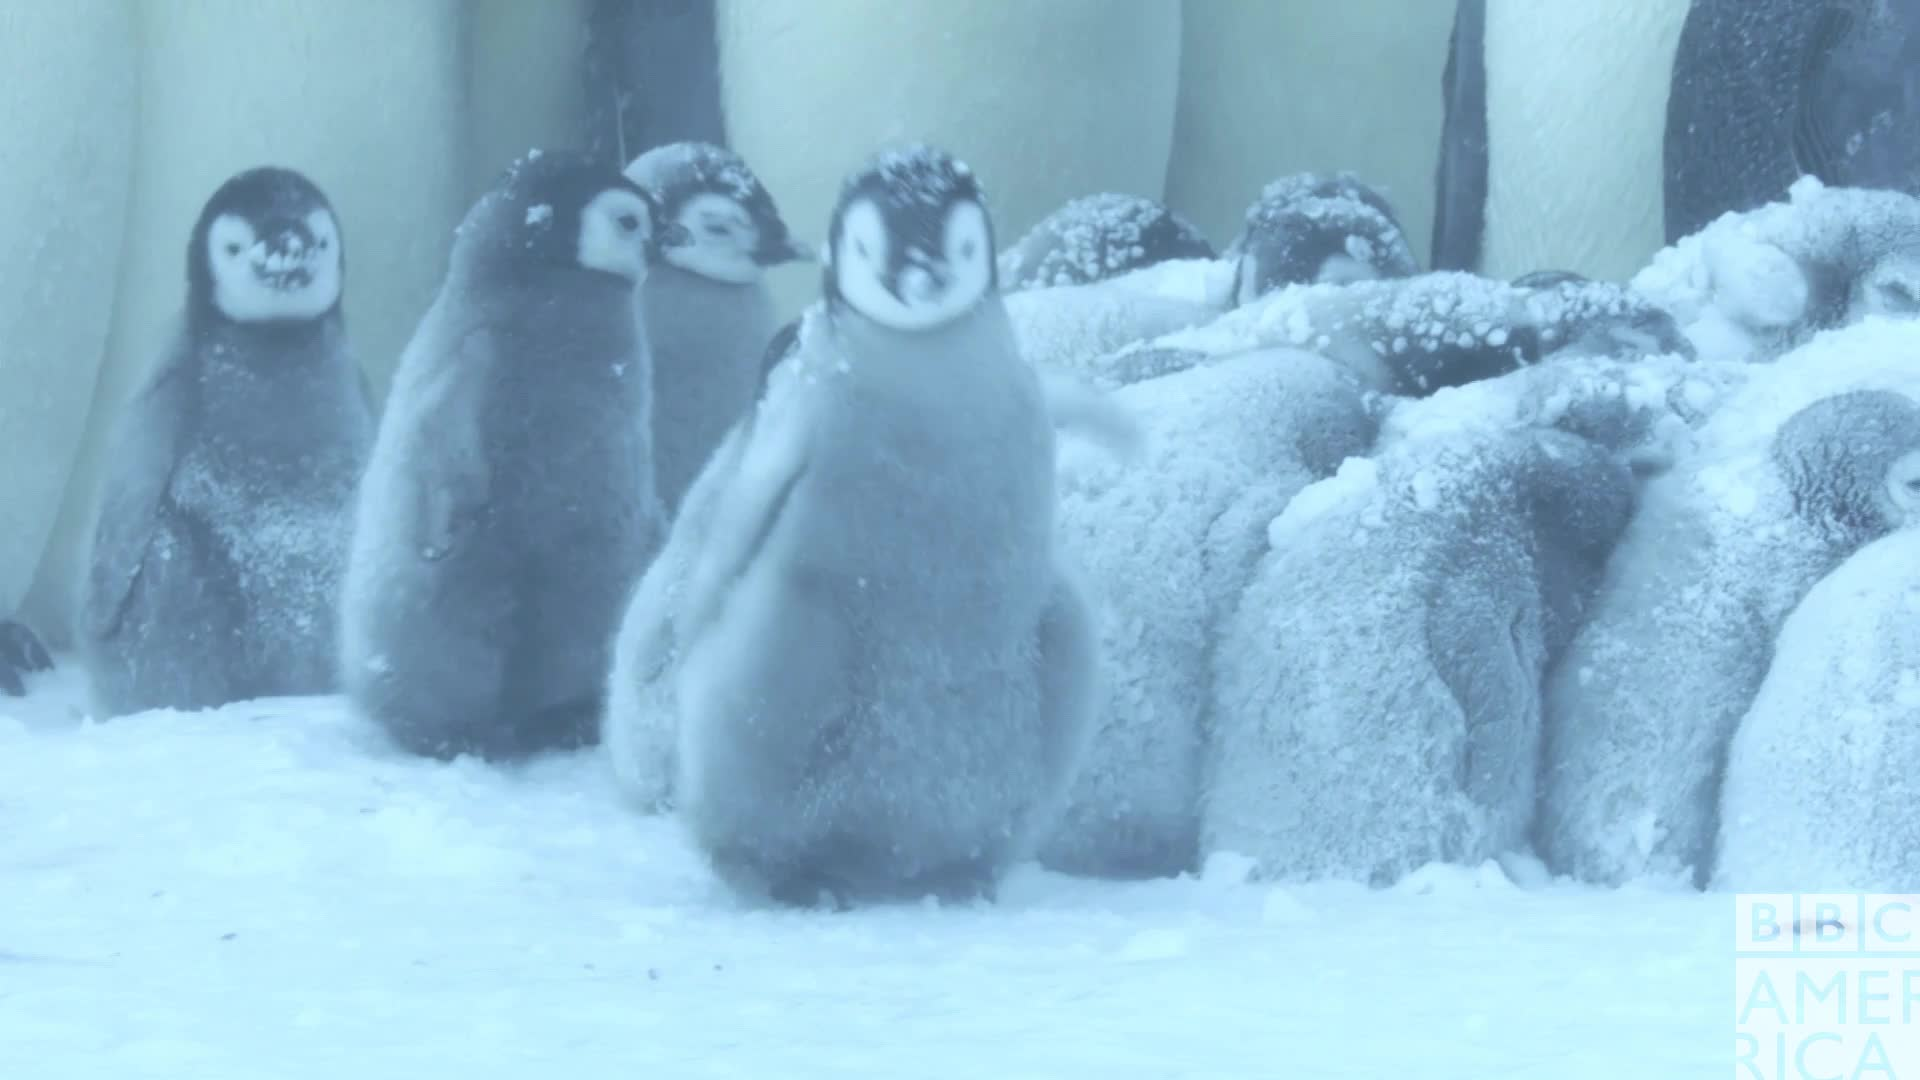 animal, animals, bbc america, bbc america dynasties, bbc america: dynasties, cold, dynasties, emperor penguin, emperor penguins, excited, happy, penguin, penguins, yay, yes, Dynasties Excited Penguin Chick GIFs